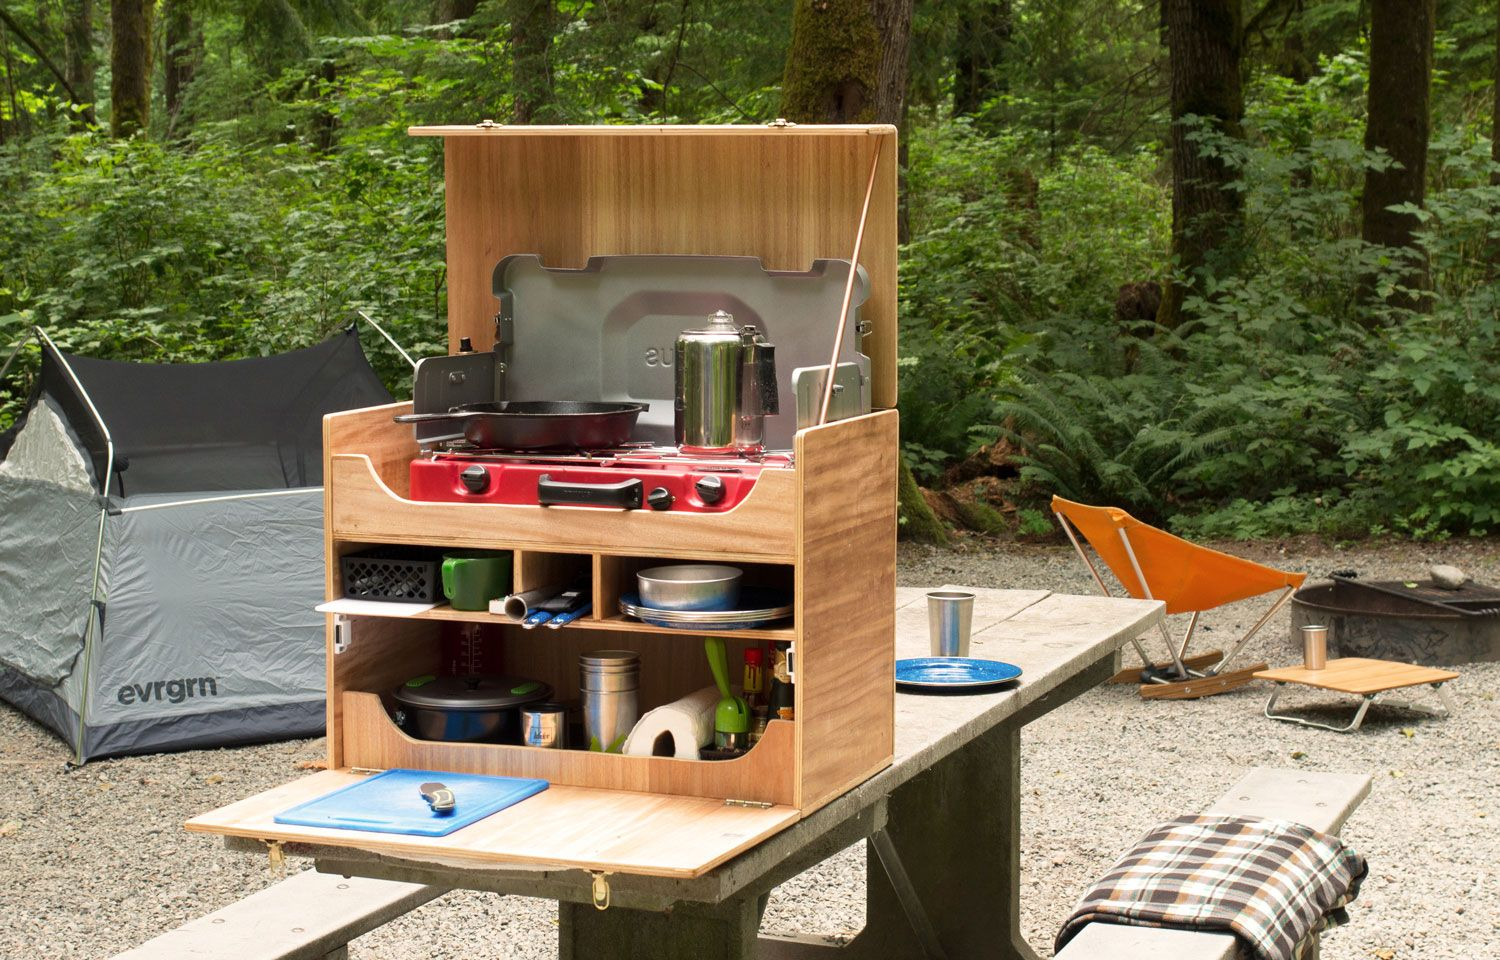 How To Build Your Own Camp Kitchen Chuck Box Rei Co Op Journal Camping Box Camp Kitchen Chuck Box Camp Kitchen Box